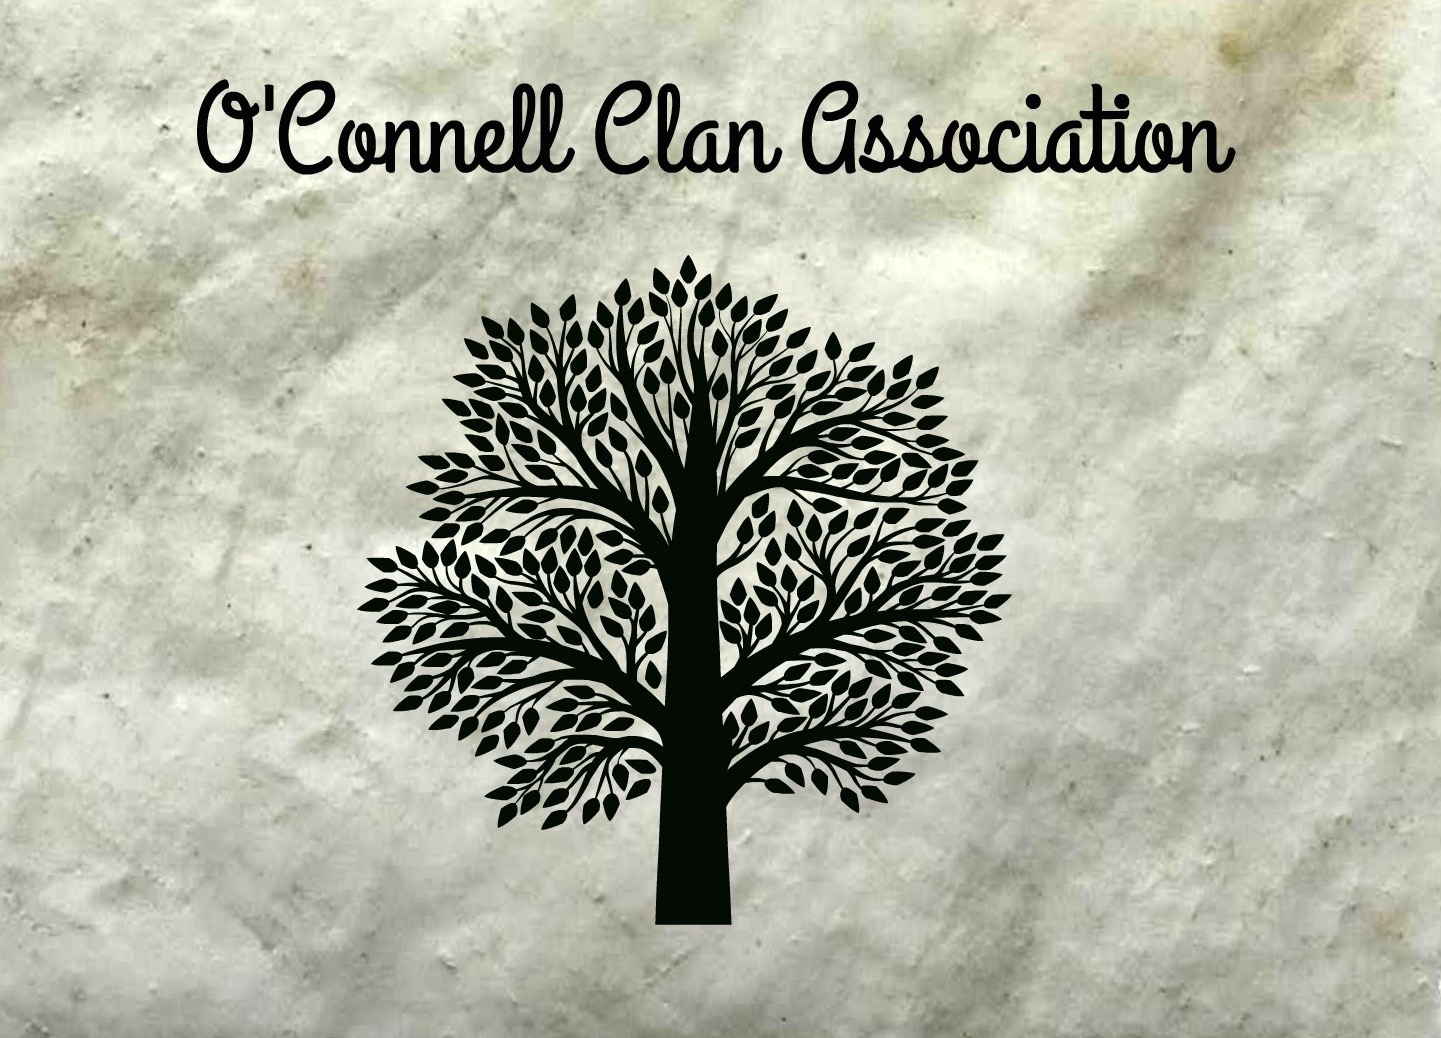 O'Connell Clan Association